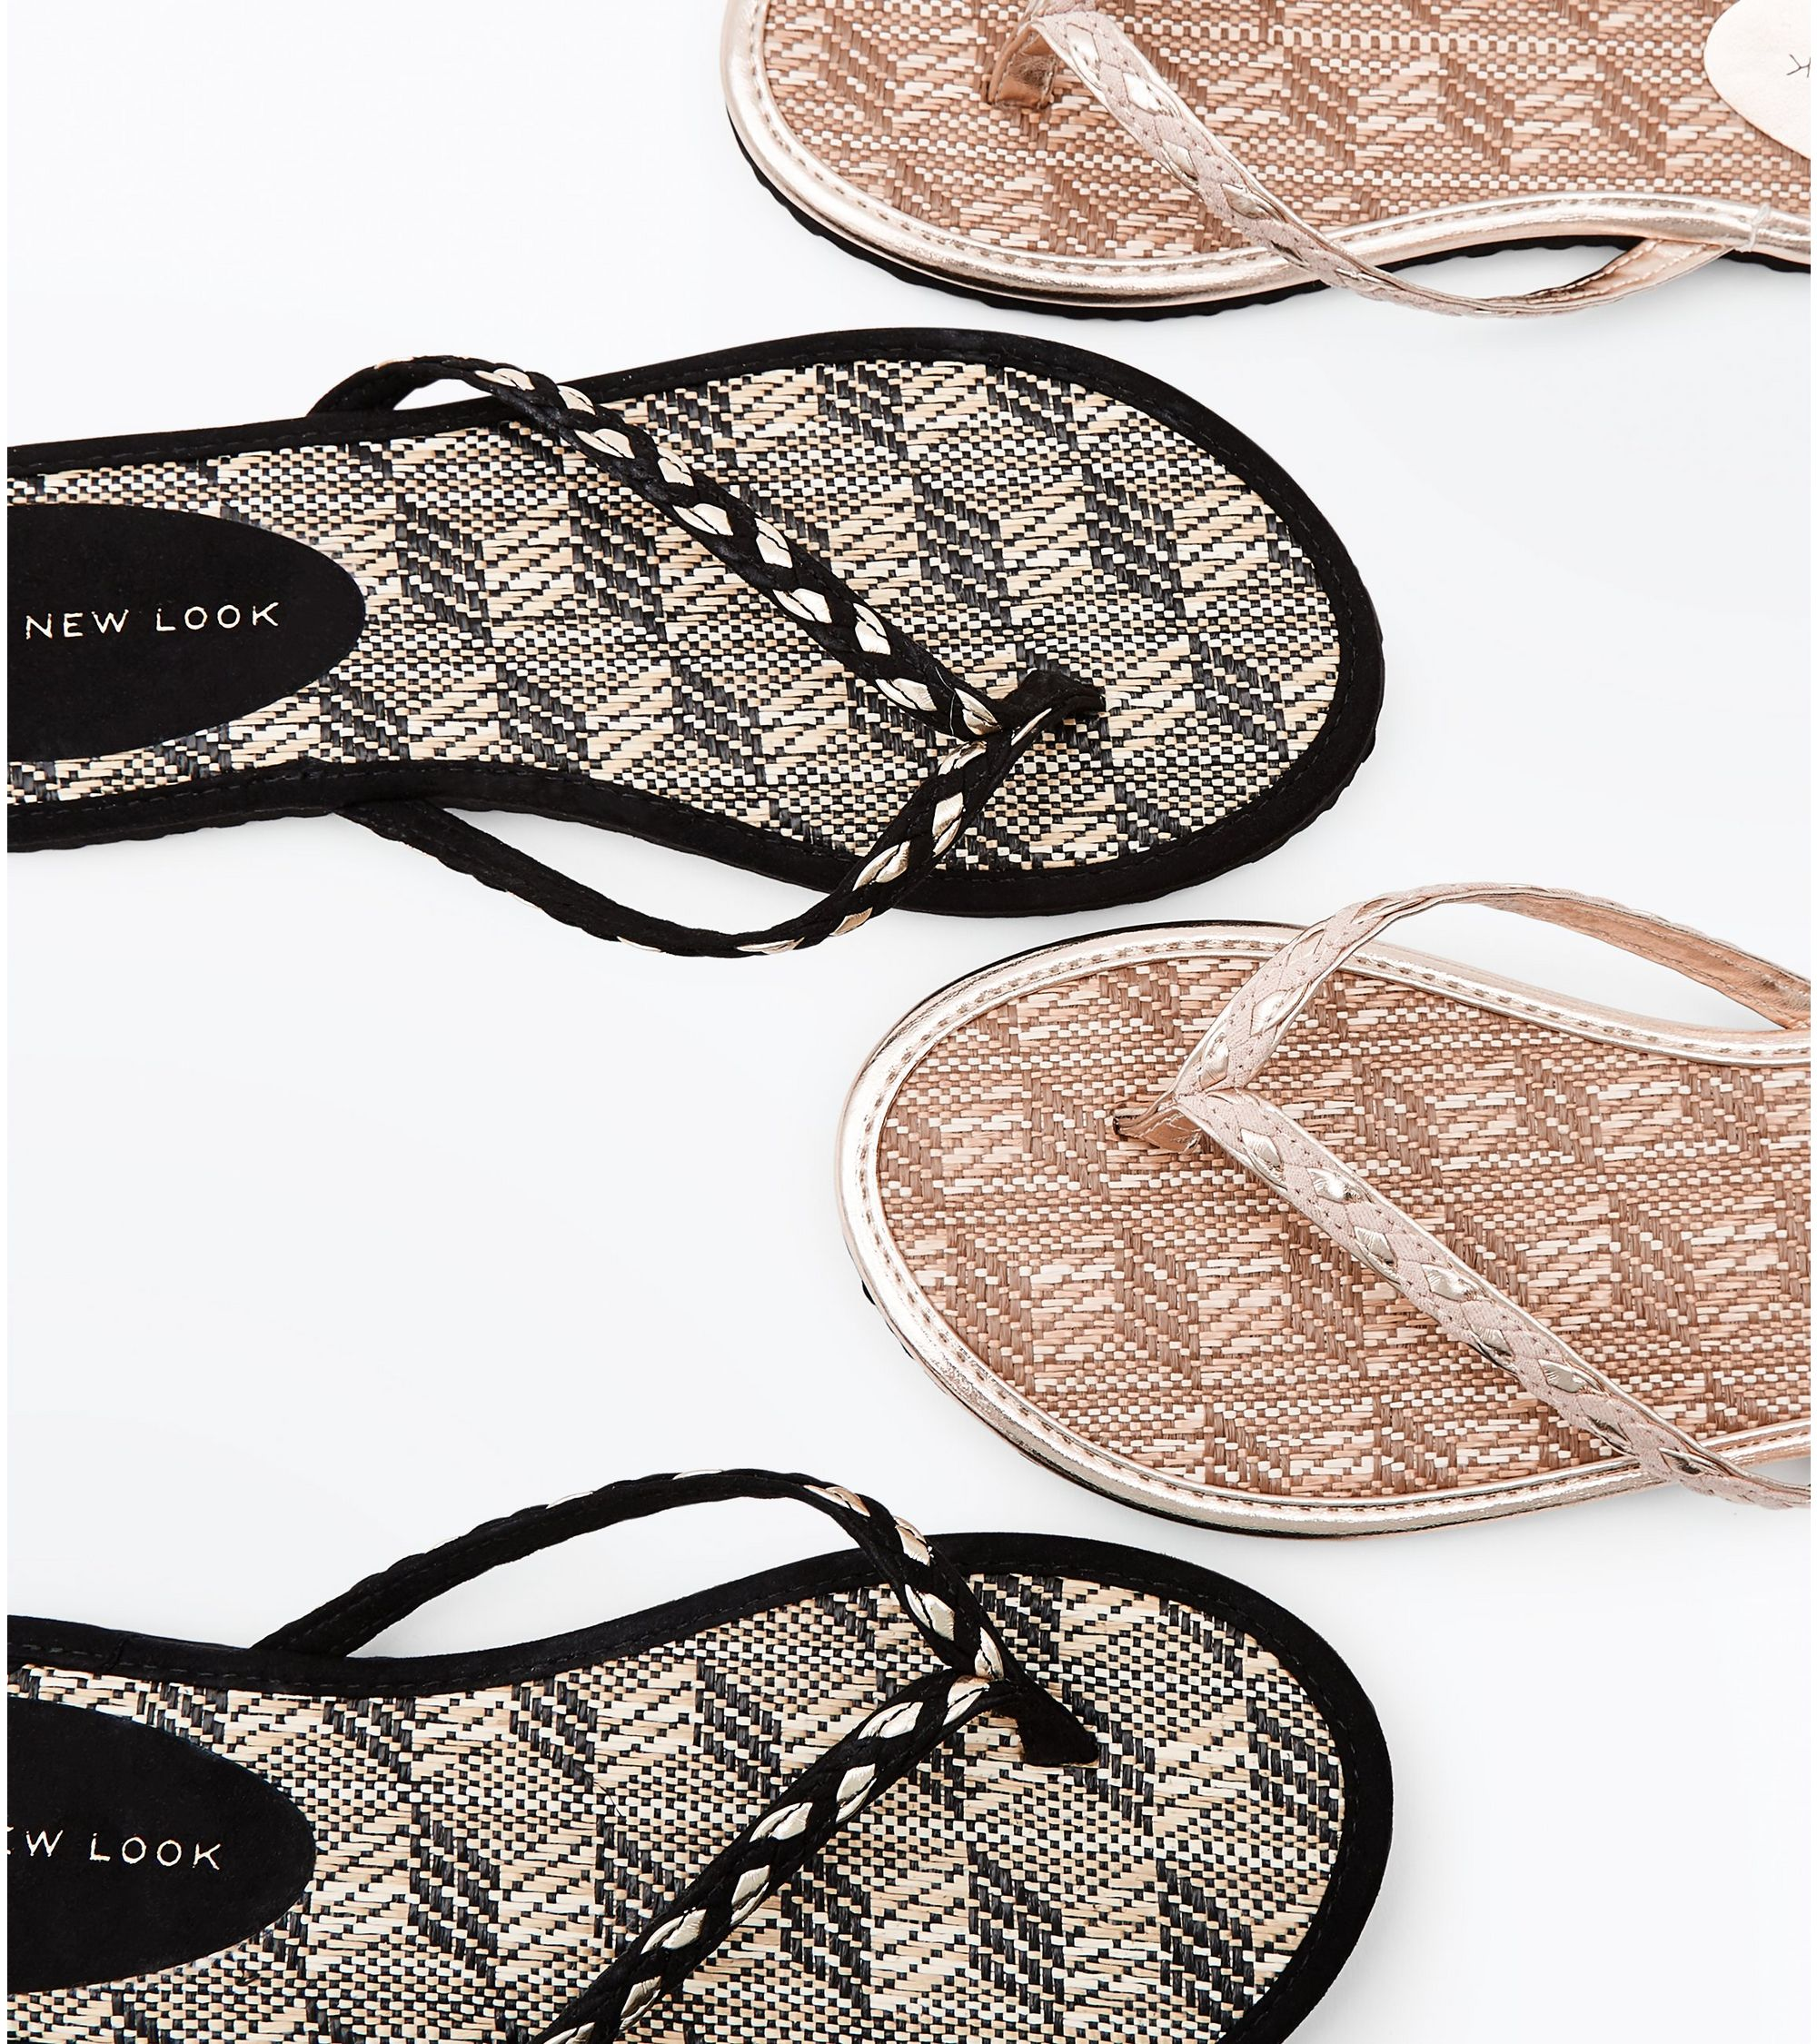 3b5402296e56 New Look 2 Pack Black and Tan Woven Straw Flip Flops at £6.29